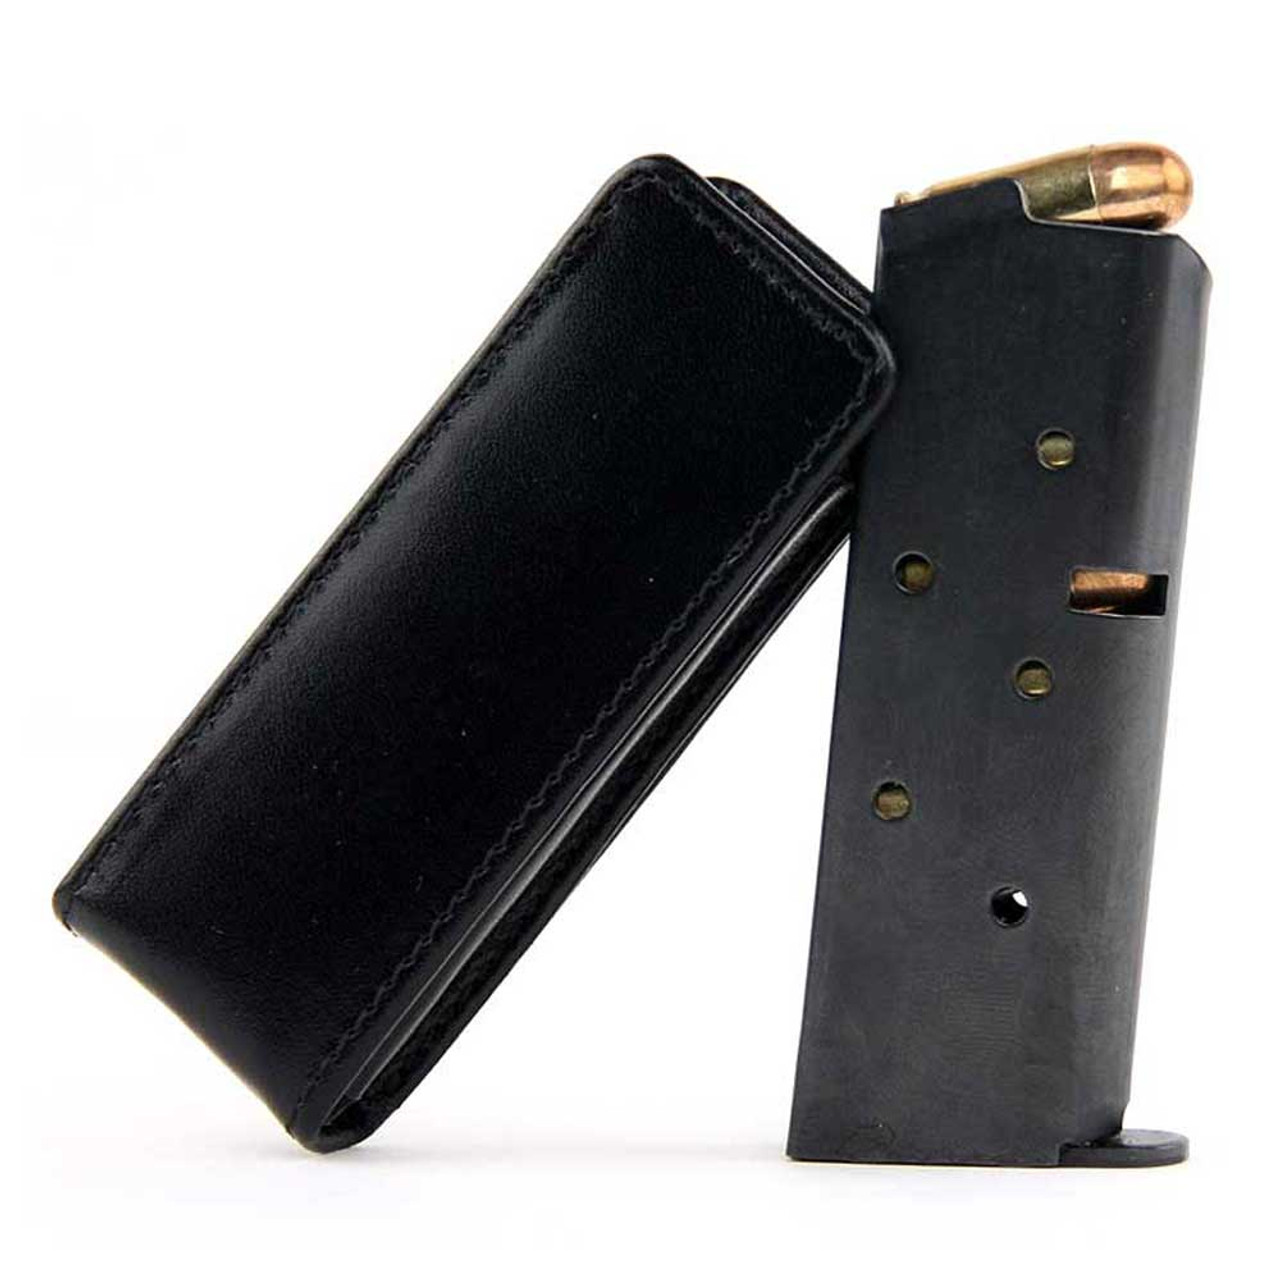 Masterpiece Arms .32 Magazine Pocket Protector